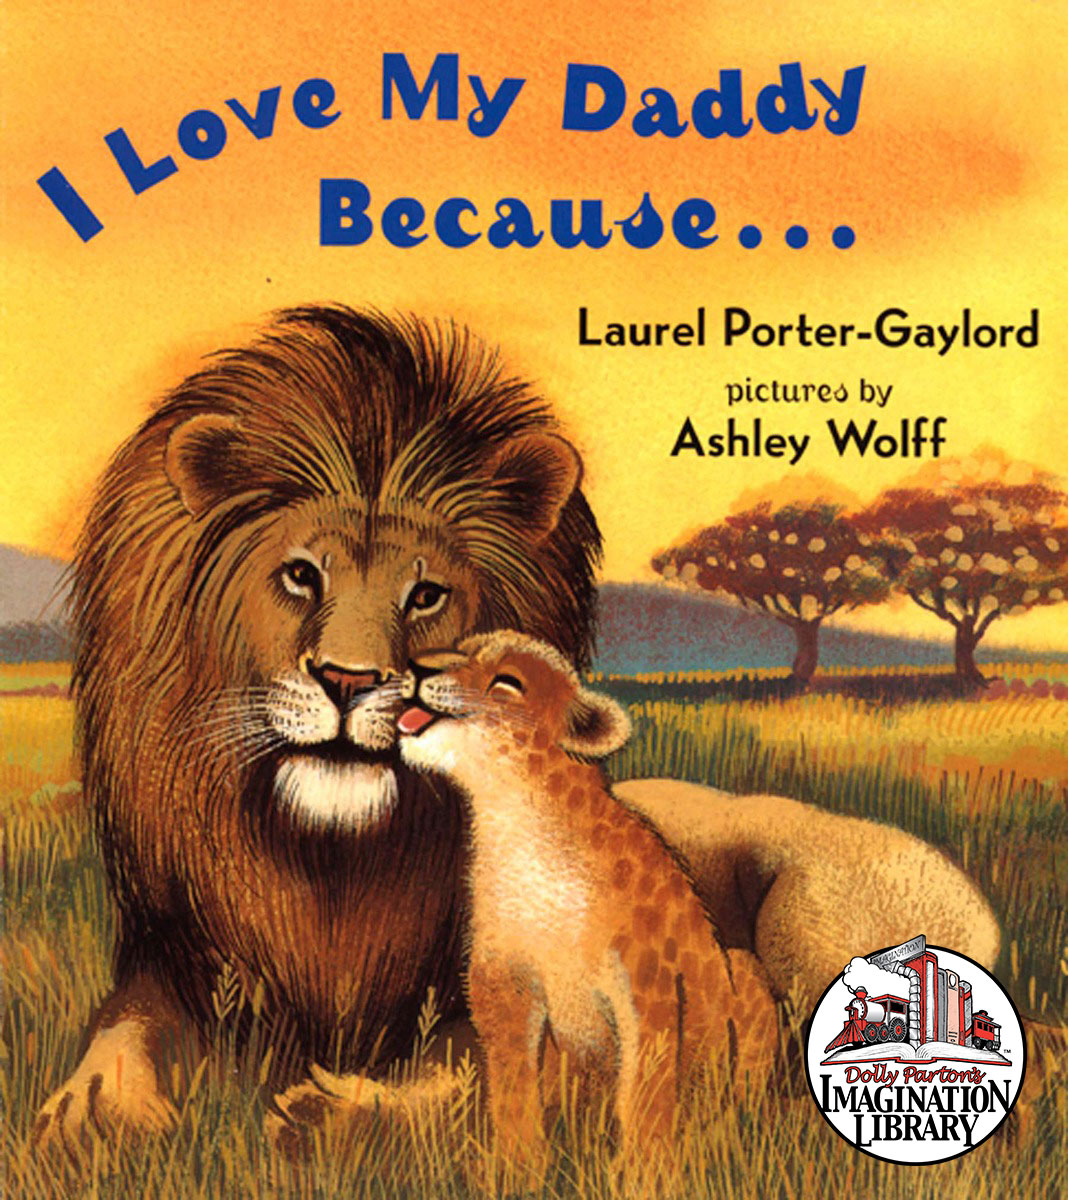 I-Love-My-Daddy-Because...-Logo.jpg